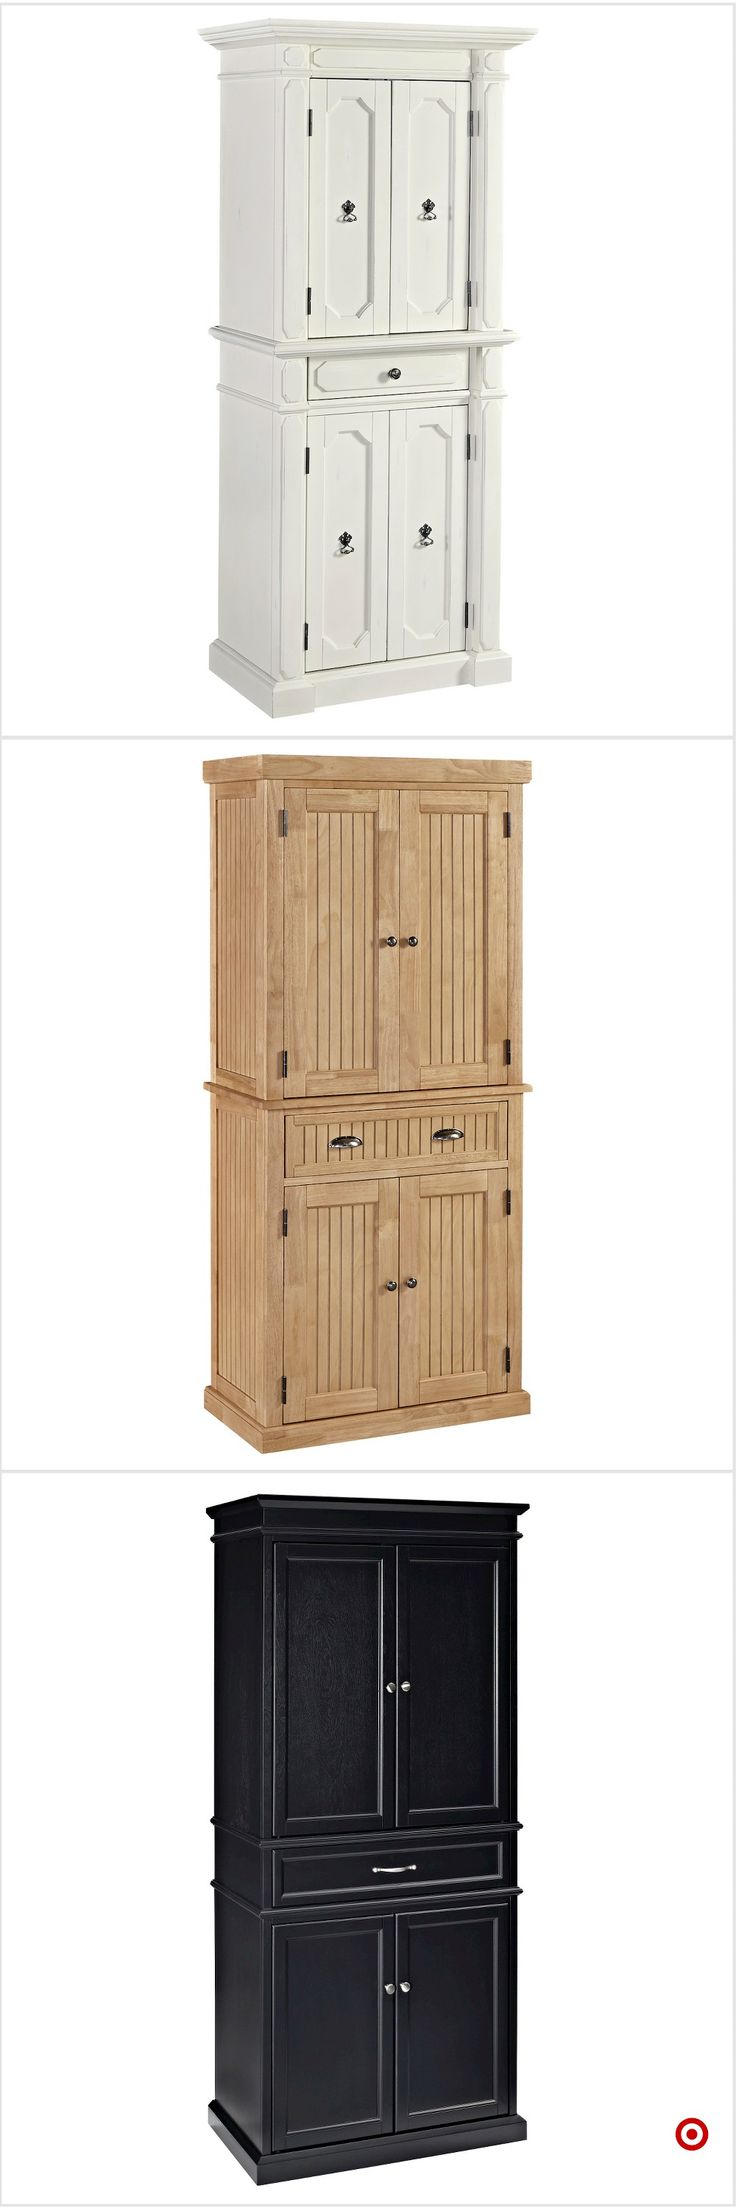 Shop Target for kitchen storage pantry you will love at